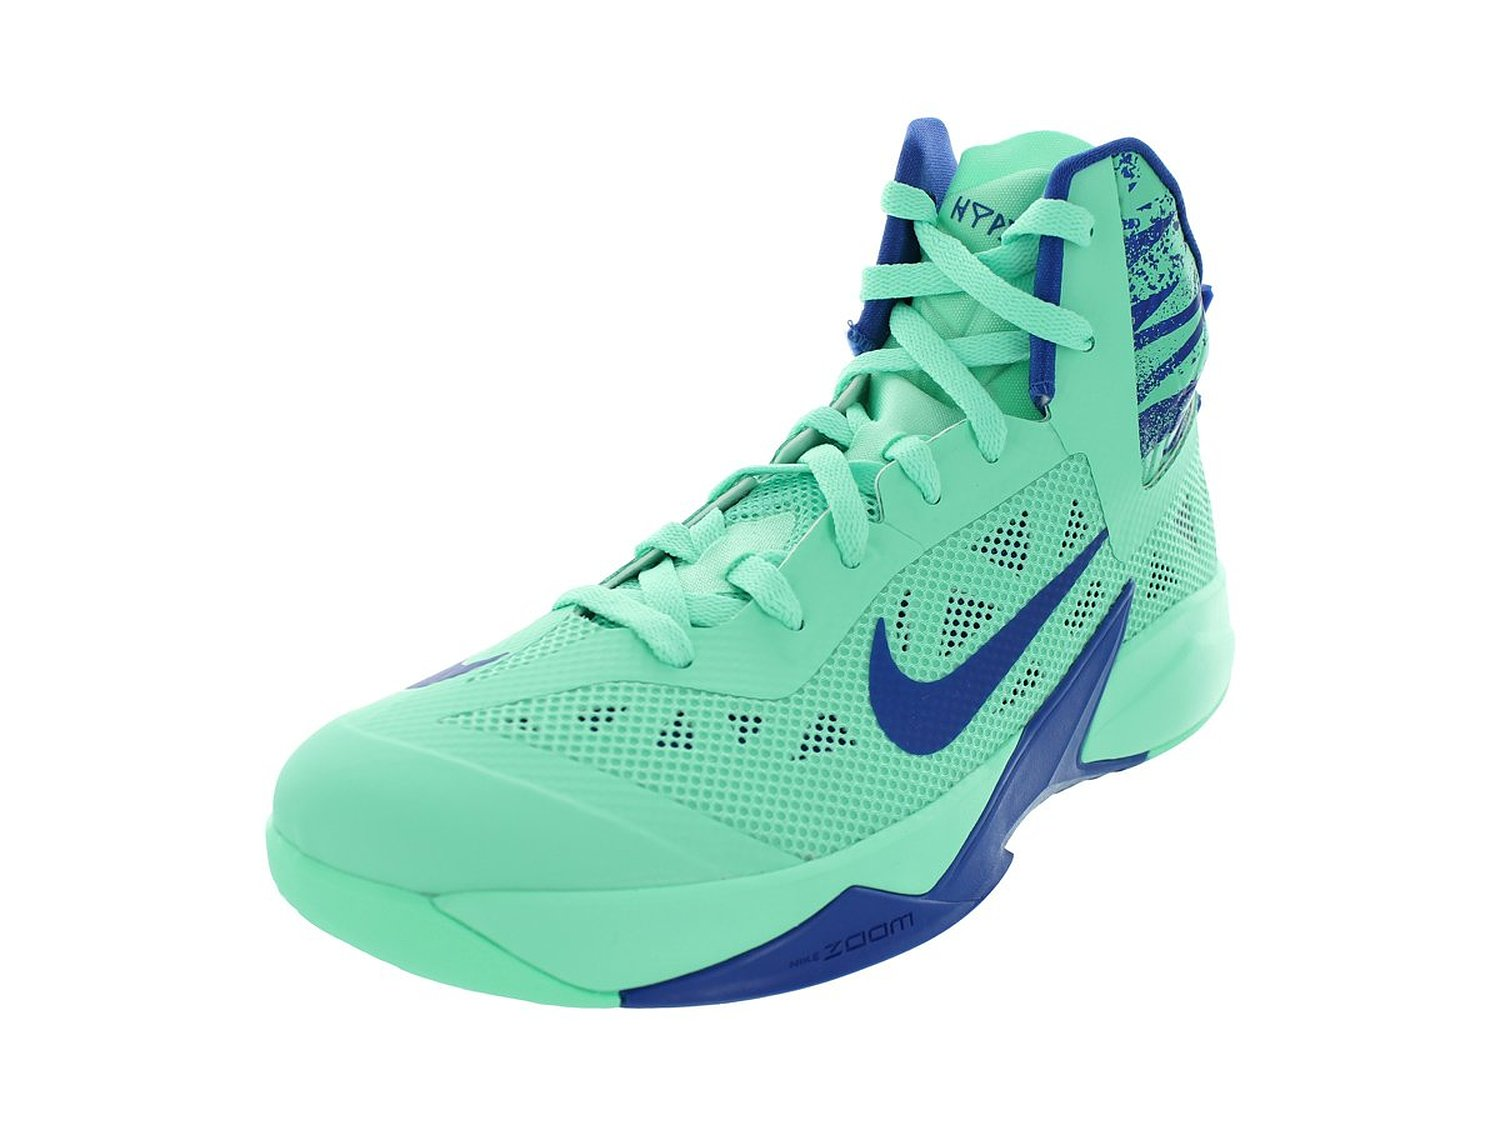 498809cebdf6 Buy BARELY USED Nike zoom hyperfuse mens basketball shoes size in ...